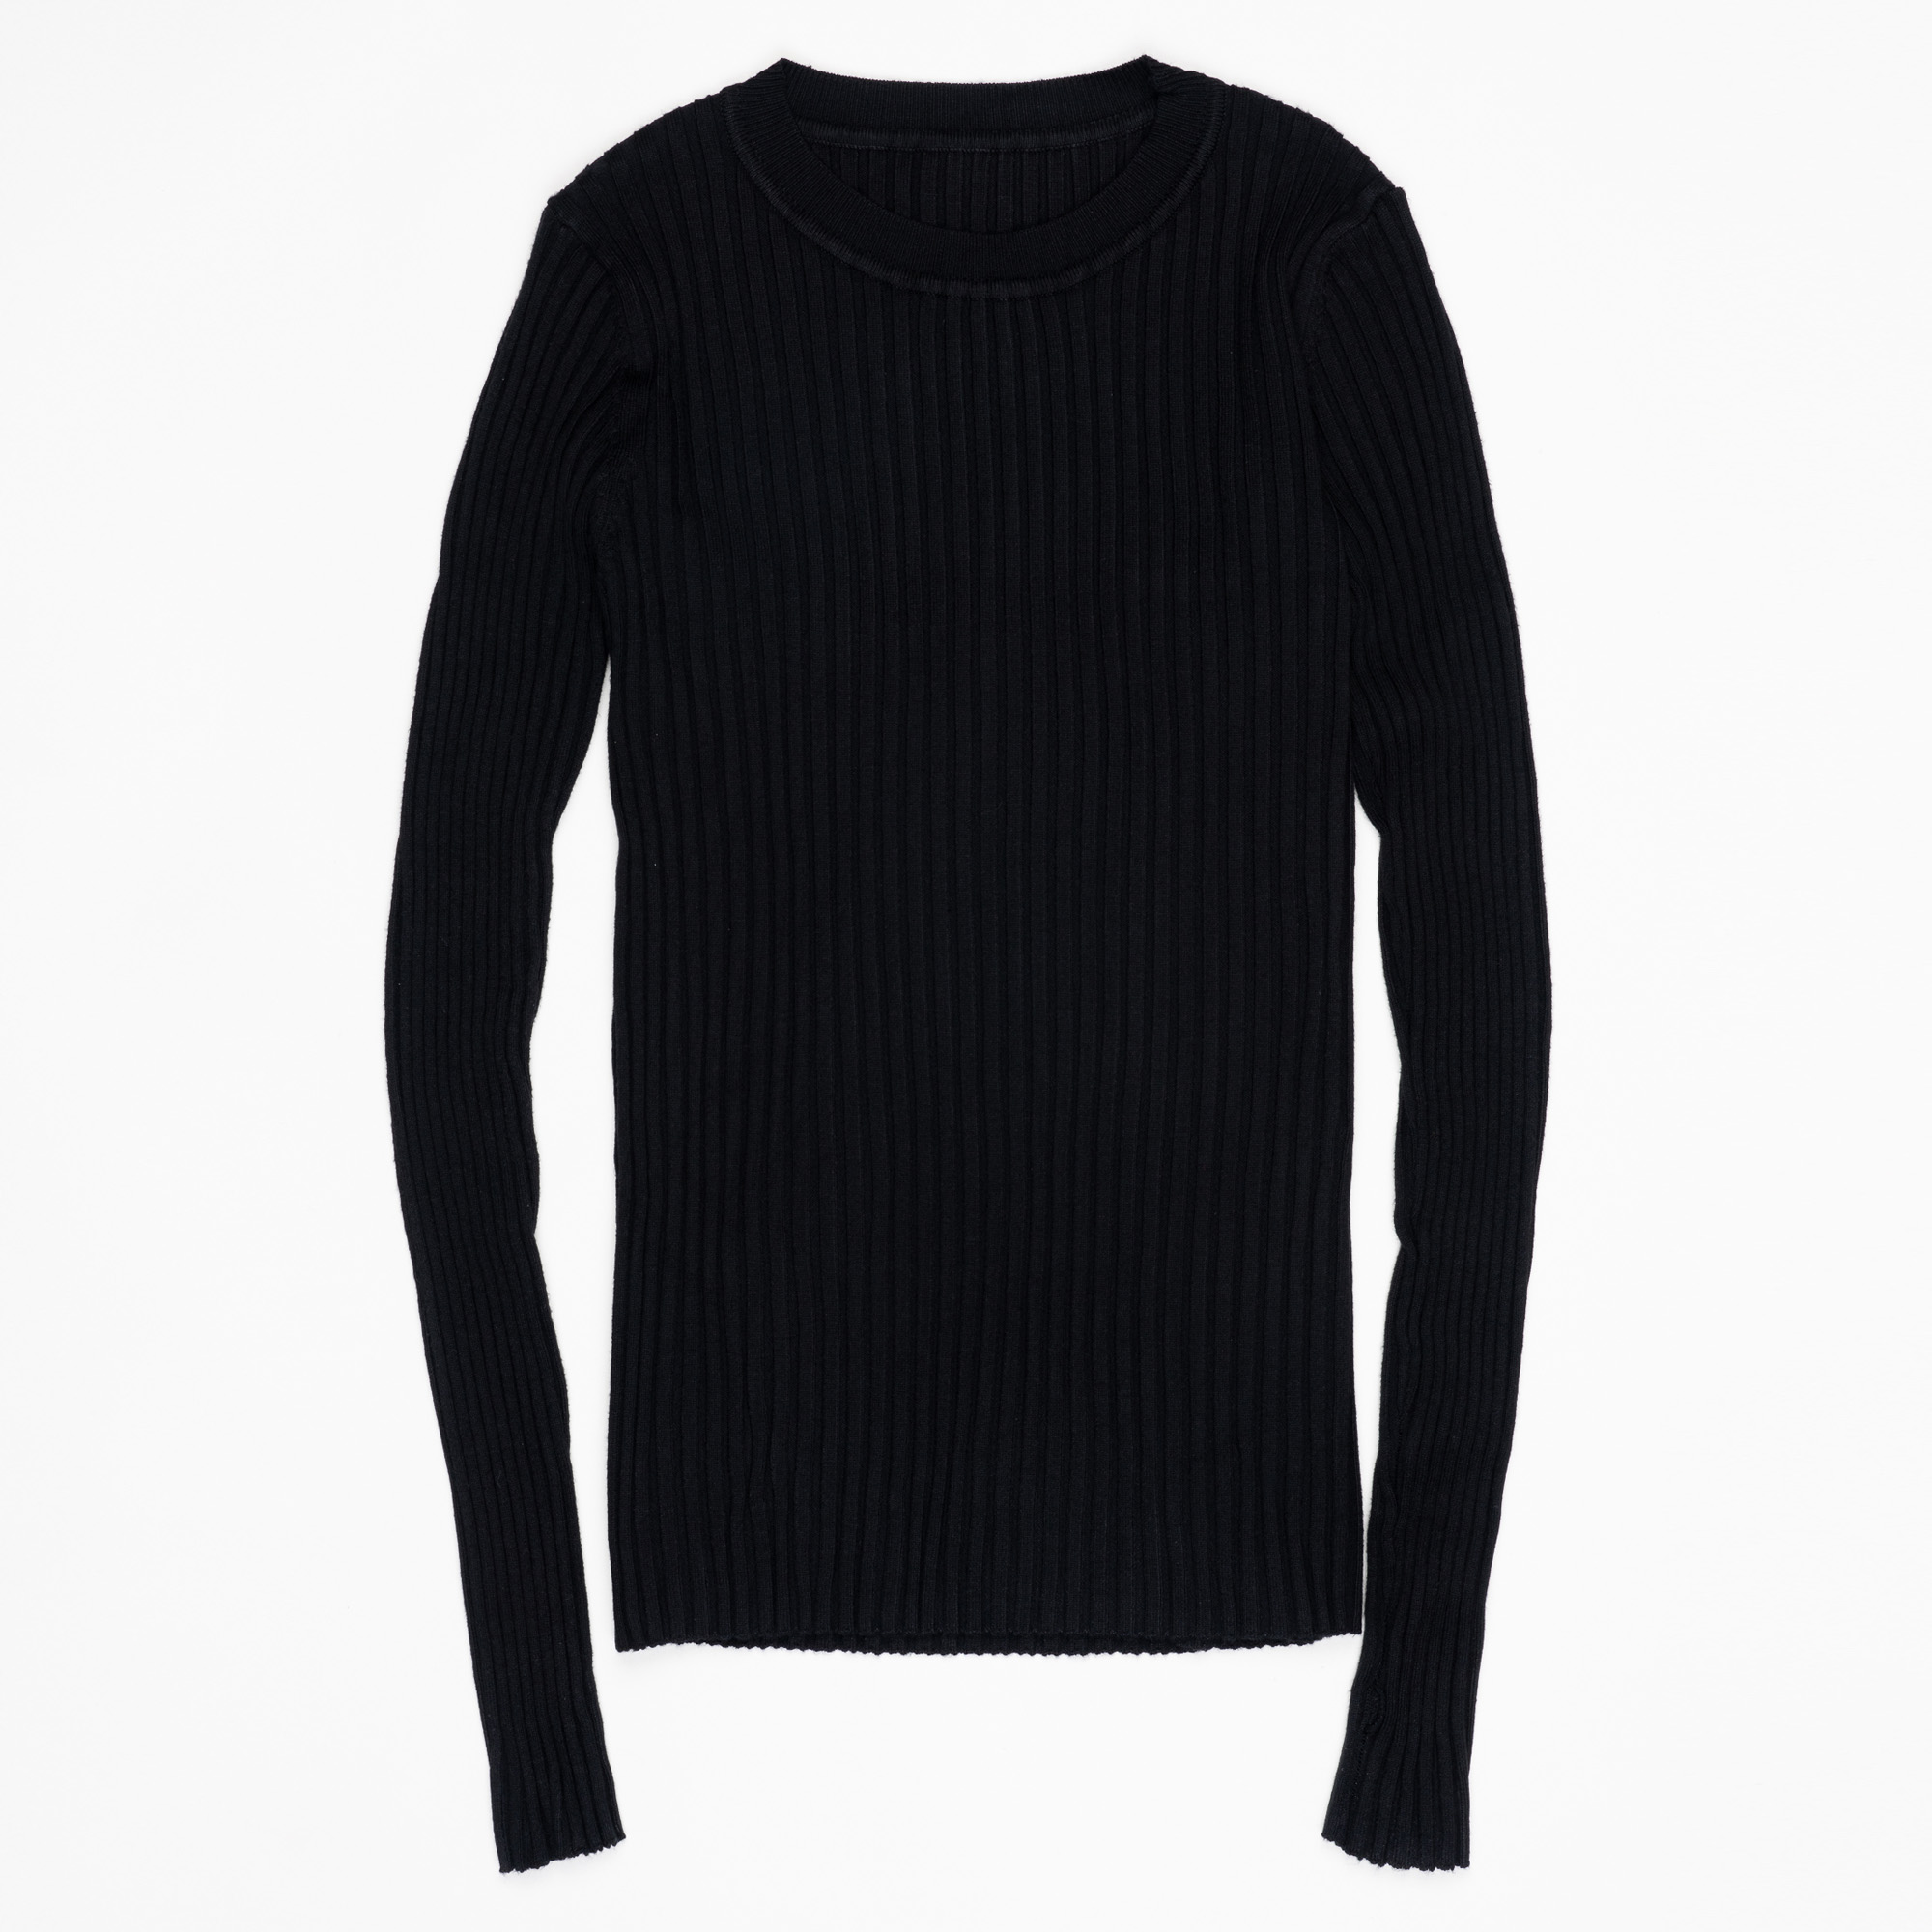 Women Sweater Pullover Basic Ribbed Sweaters Cotton Tops Knitted Solid Crew Neck With Thumb Hole 10